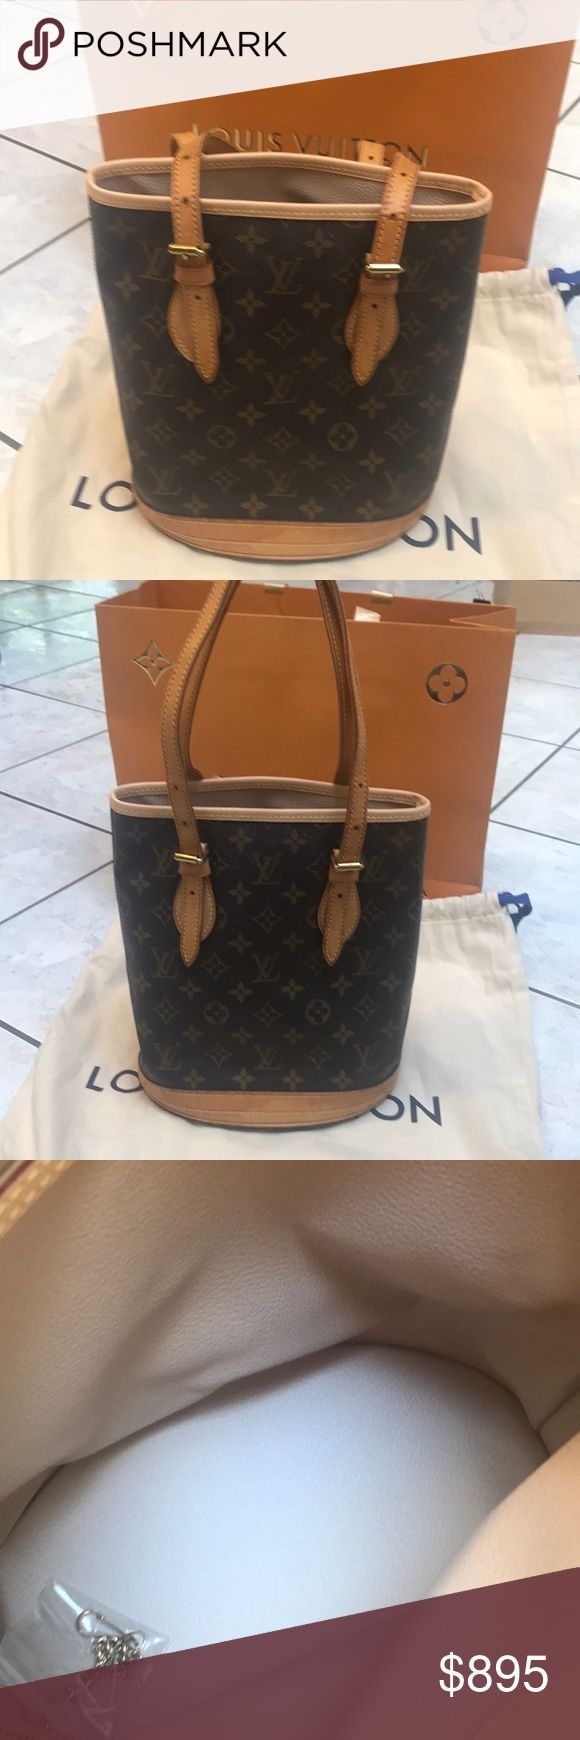 EUC LOUIS VUITTON BUCKET BAG - BAG AND DUST BAG ABSOLUTELY 💯 percent authentic Louis Vuitton bucket bag in excellent condition. Slight coloration on handles from use - inside pristine - COMES WITH DUST BAG AND LOUIS VUITTON STORE BAG- please ask questions- this bag is in amazing shape! Louis Vuitton Bags Shoulder Bags